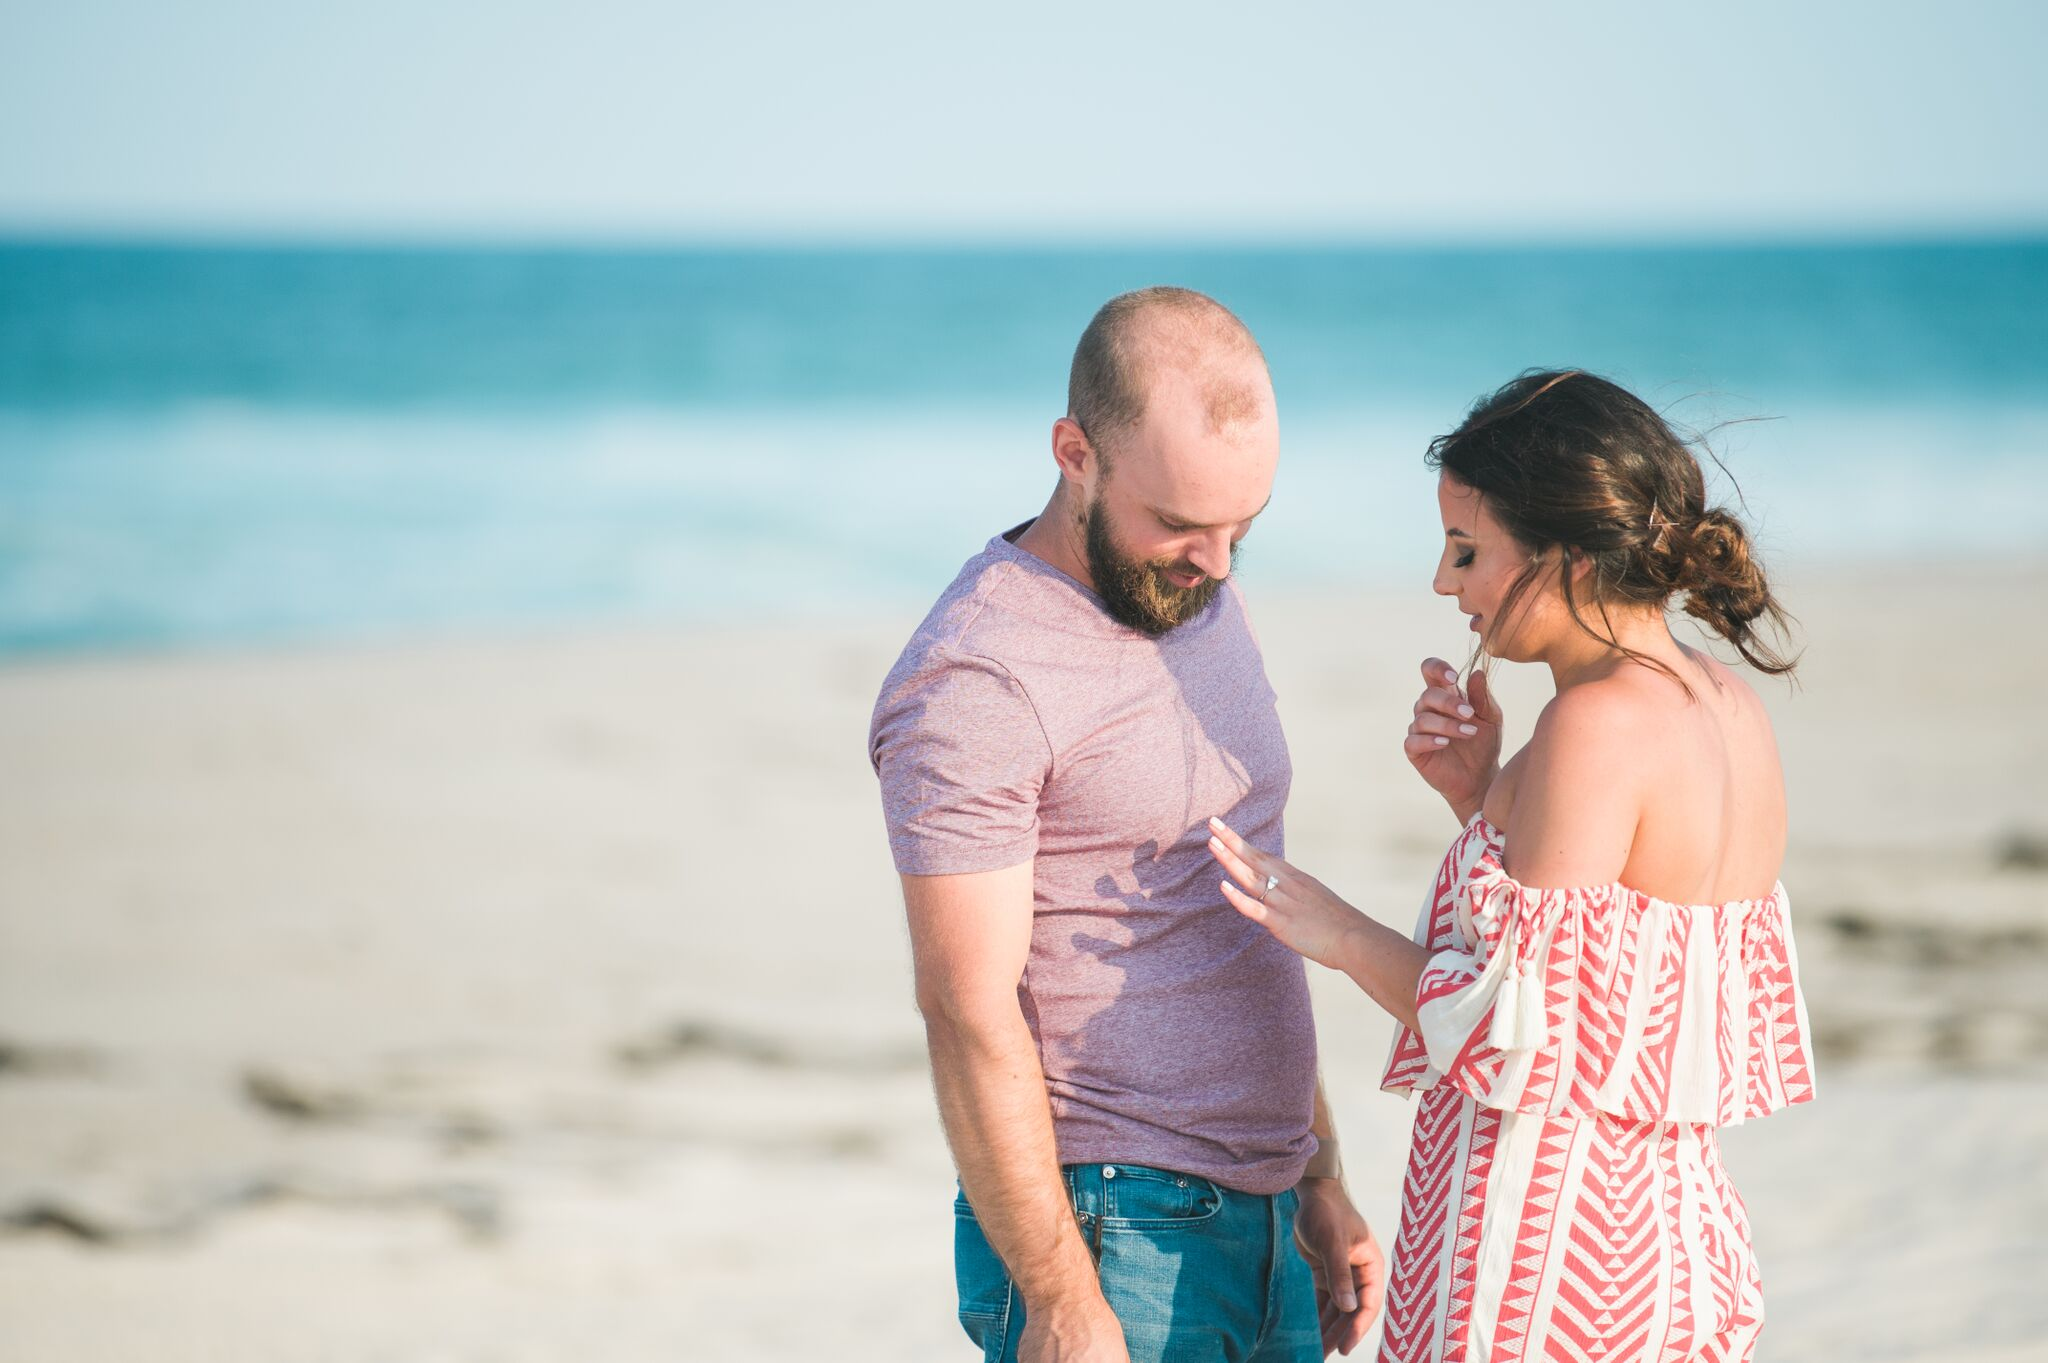 Special Gallery:Proposals! - View Gallery >